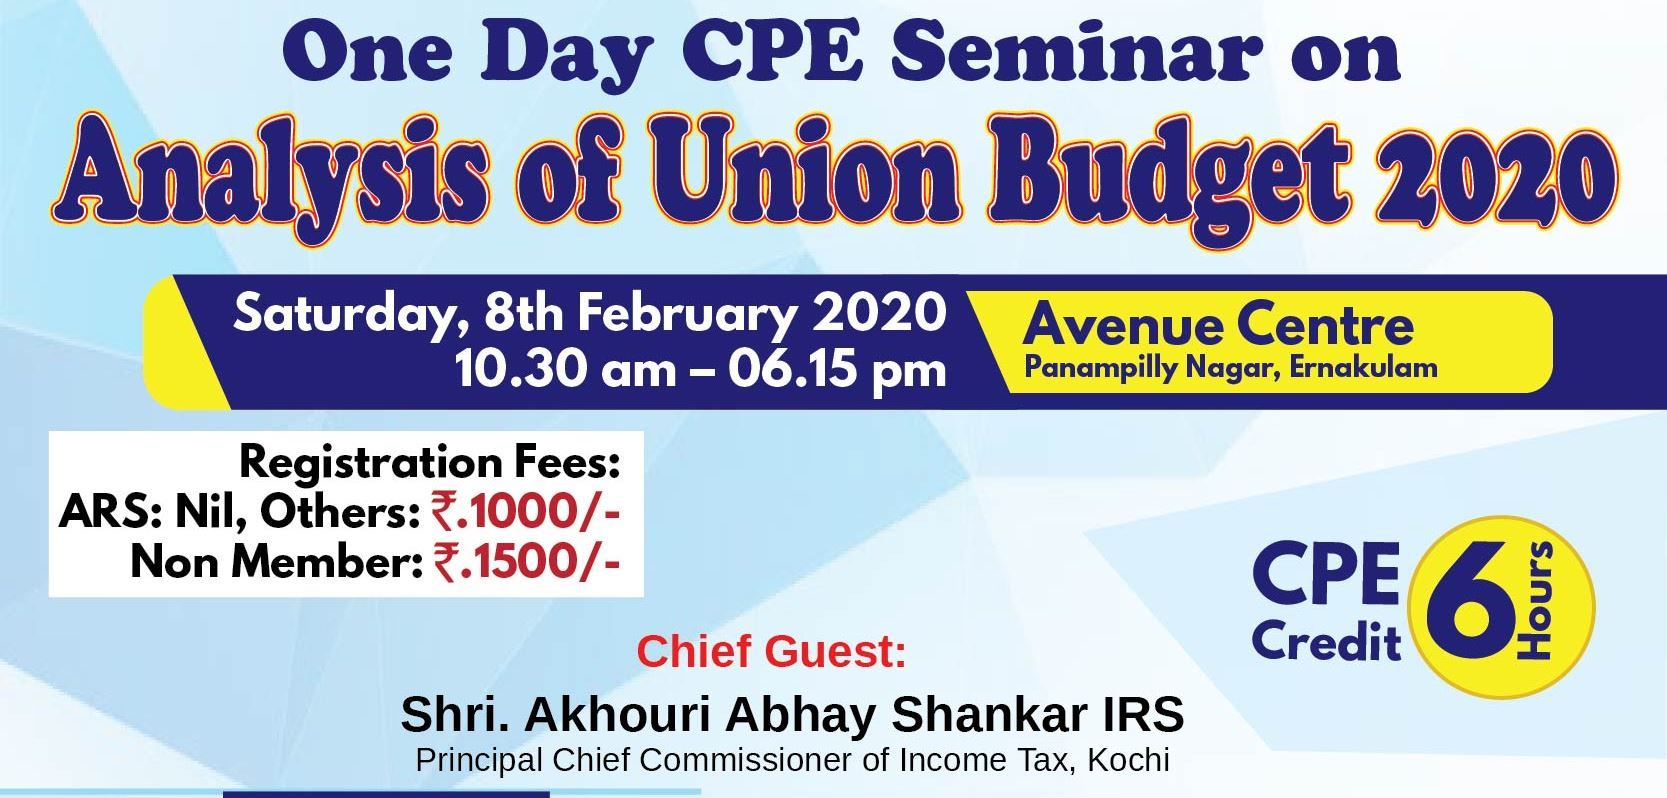 One Day CPE Seminar on Analysis of Union Budget 2020